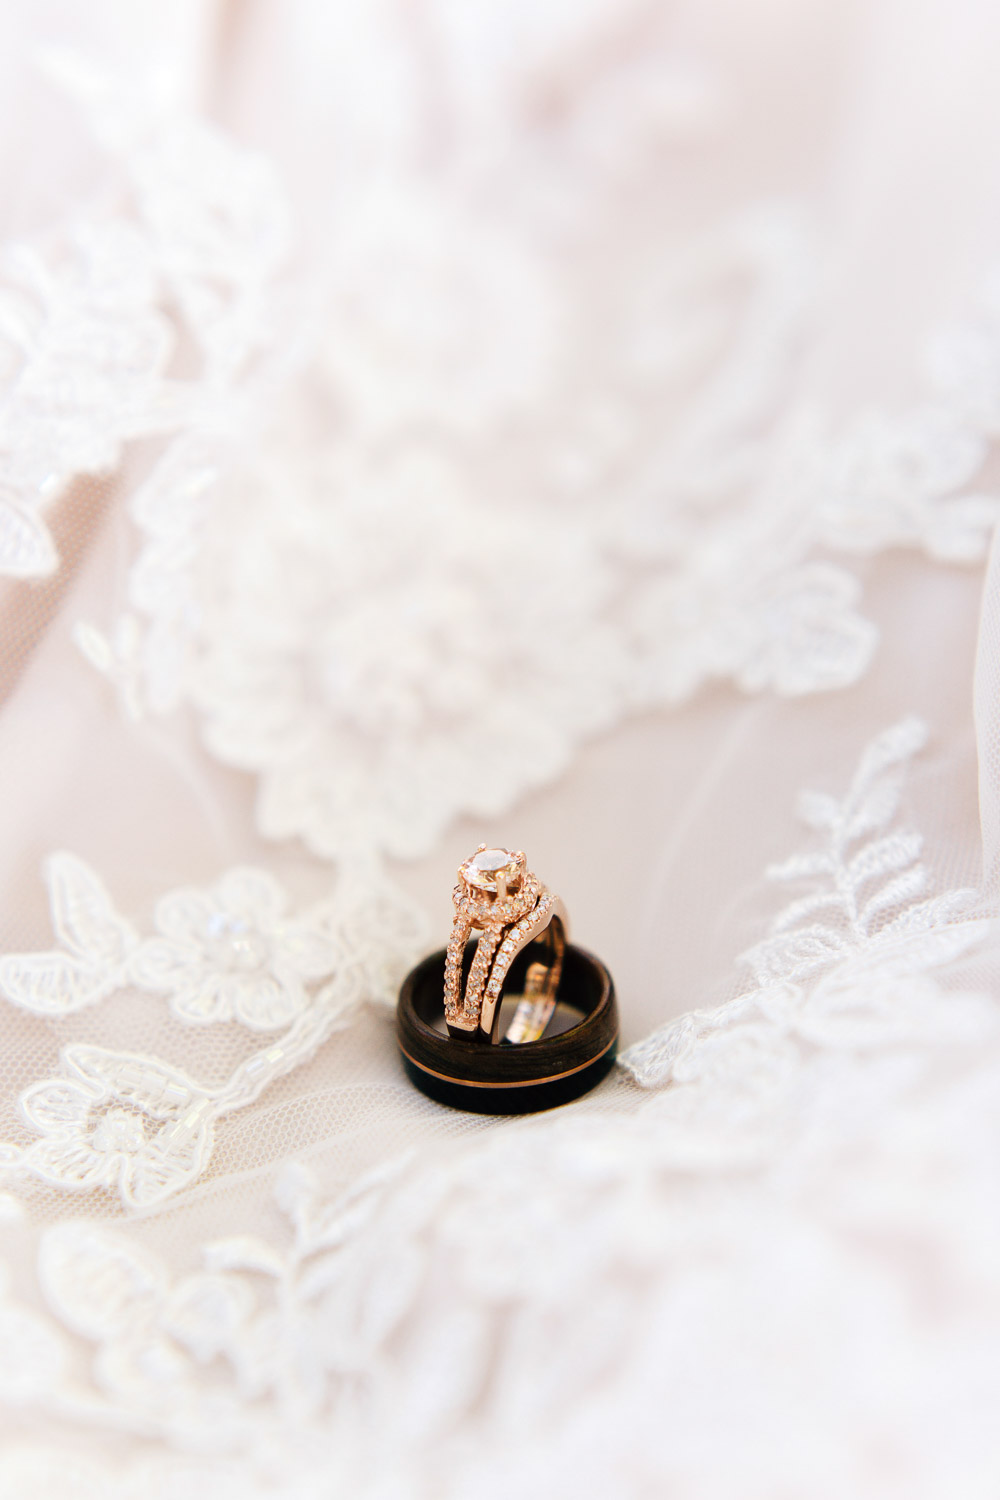 rose gold wedding rings on a lace wedding dress skirt